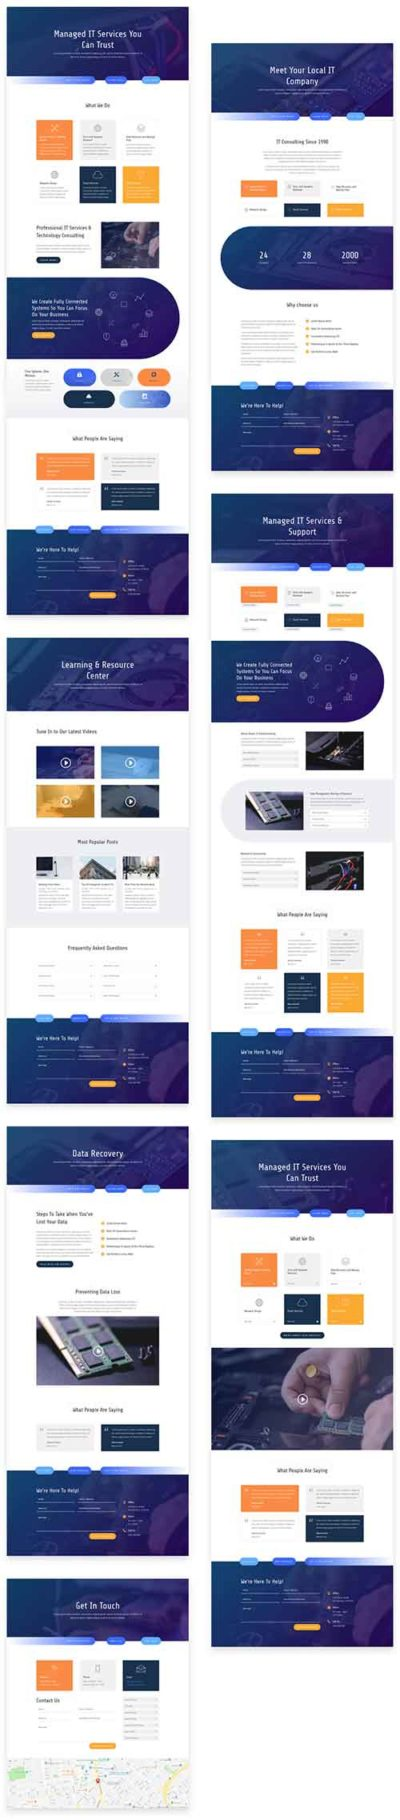 IT-services-Divi-layout-pack